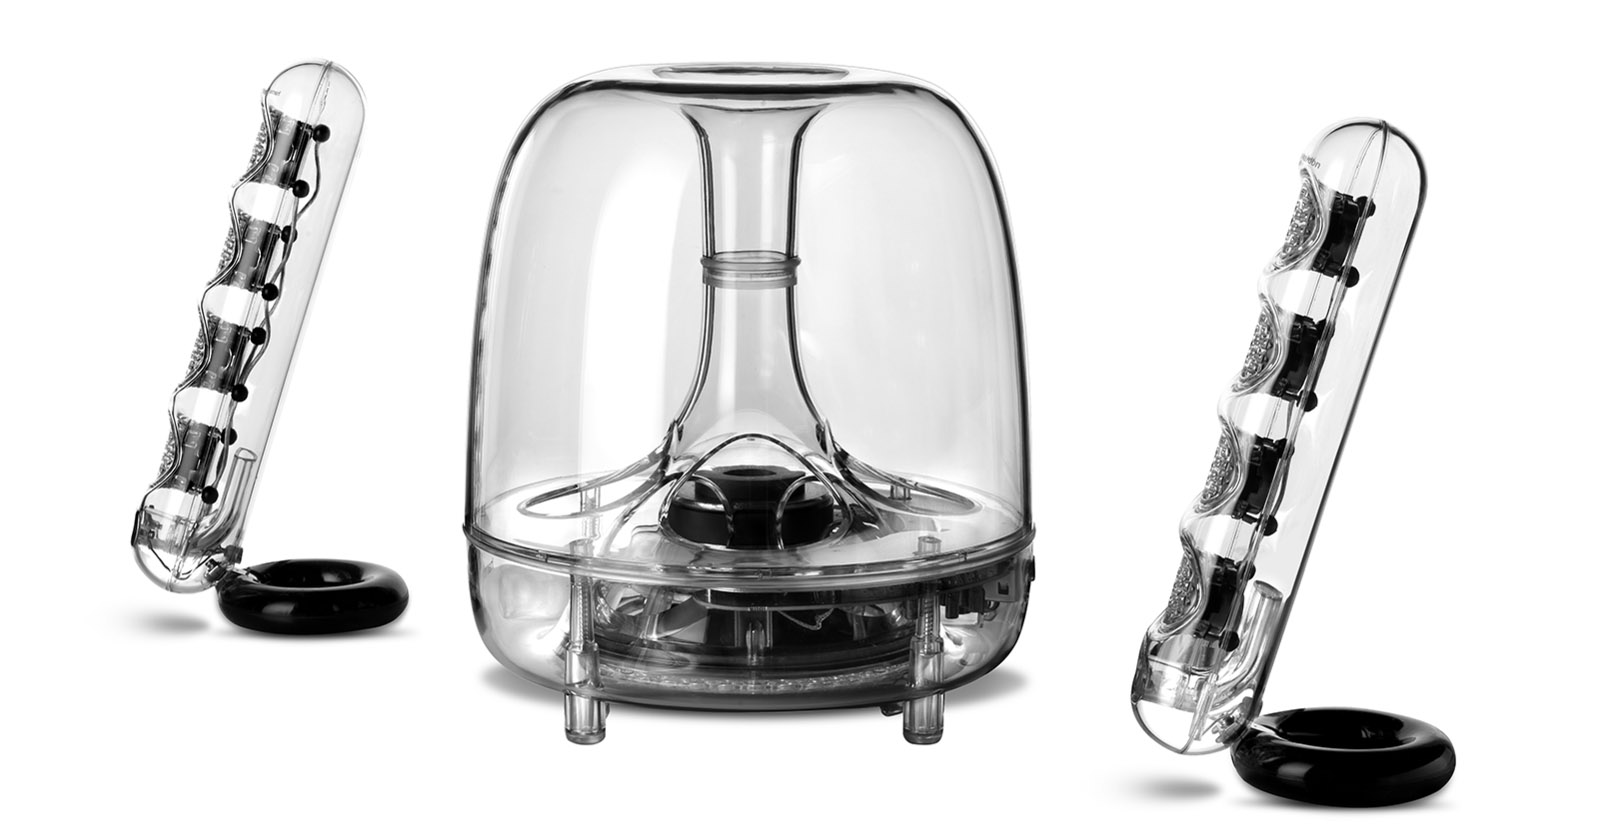 Акустика Harman Kardon Soundsticks iii сравнение с Logitech копия